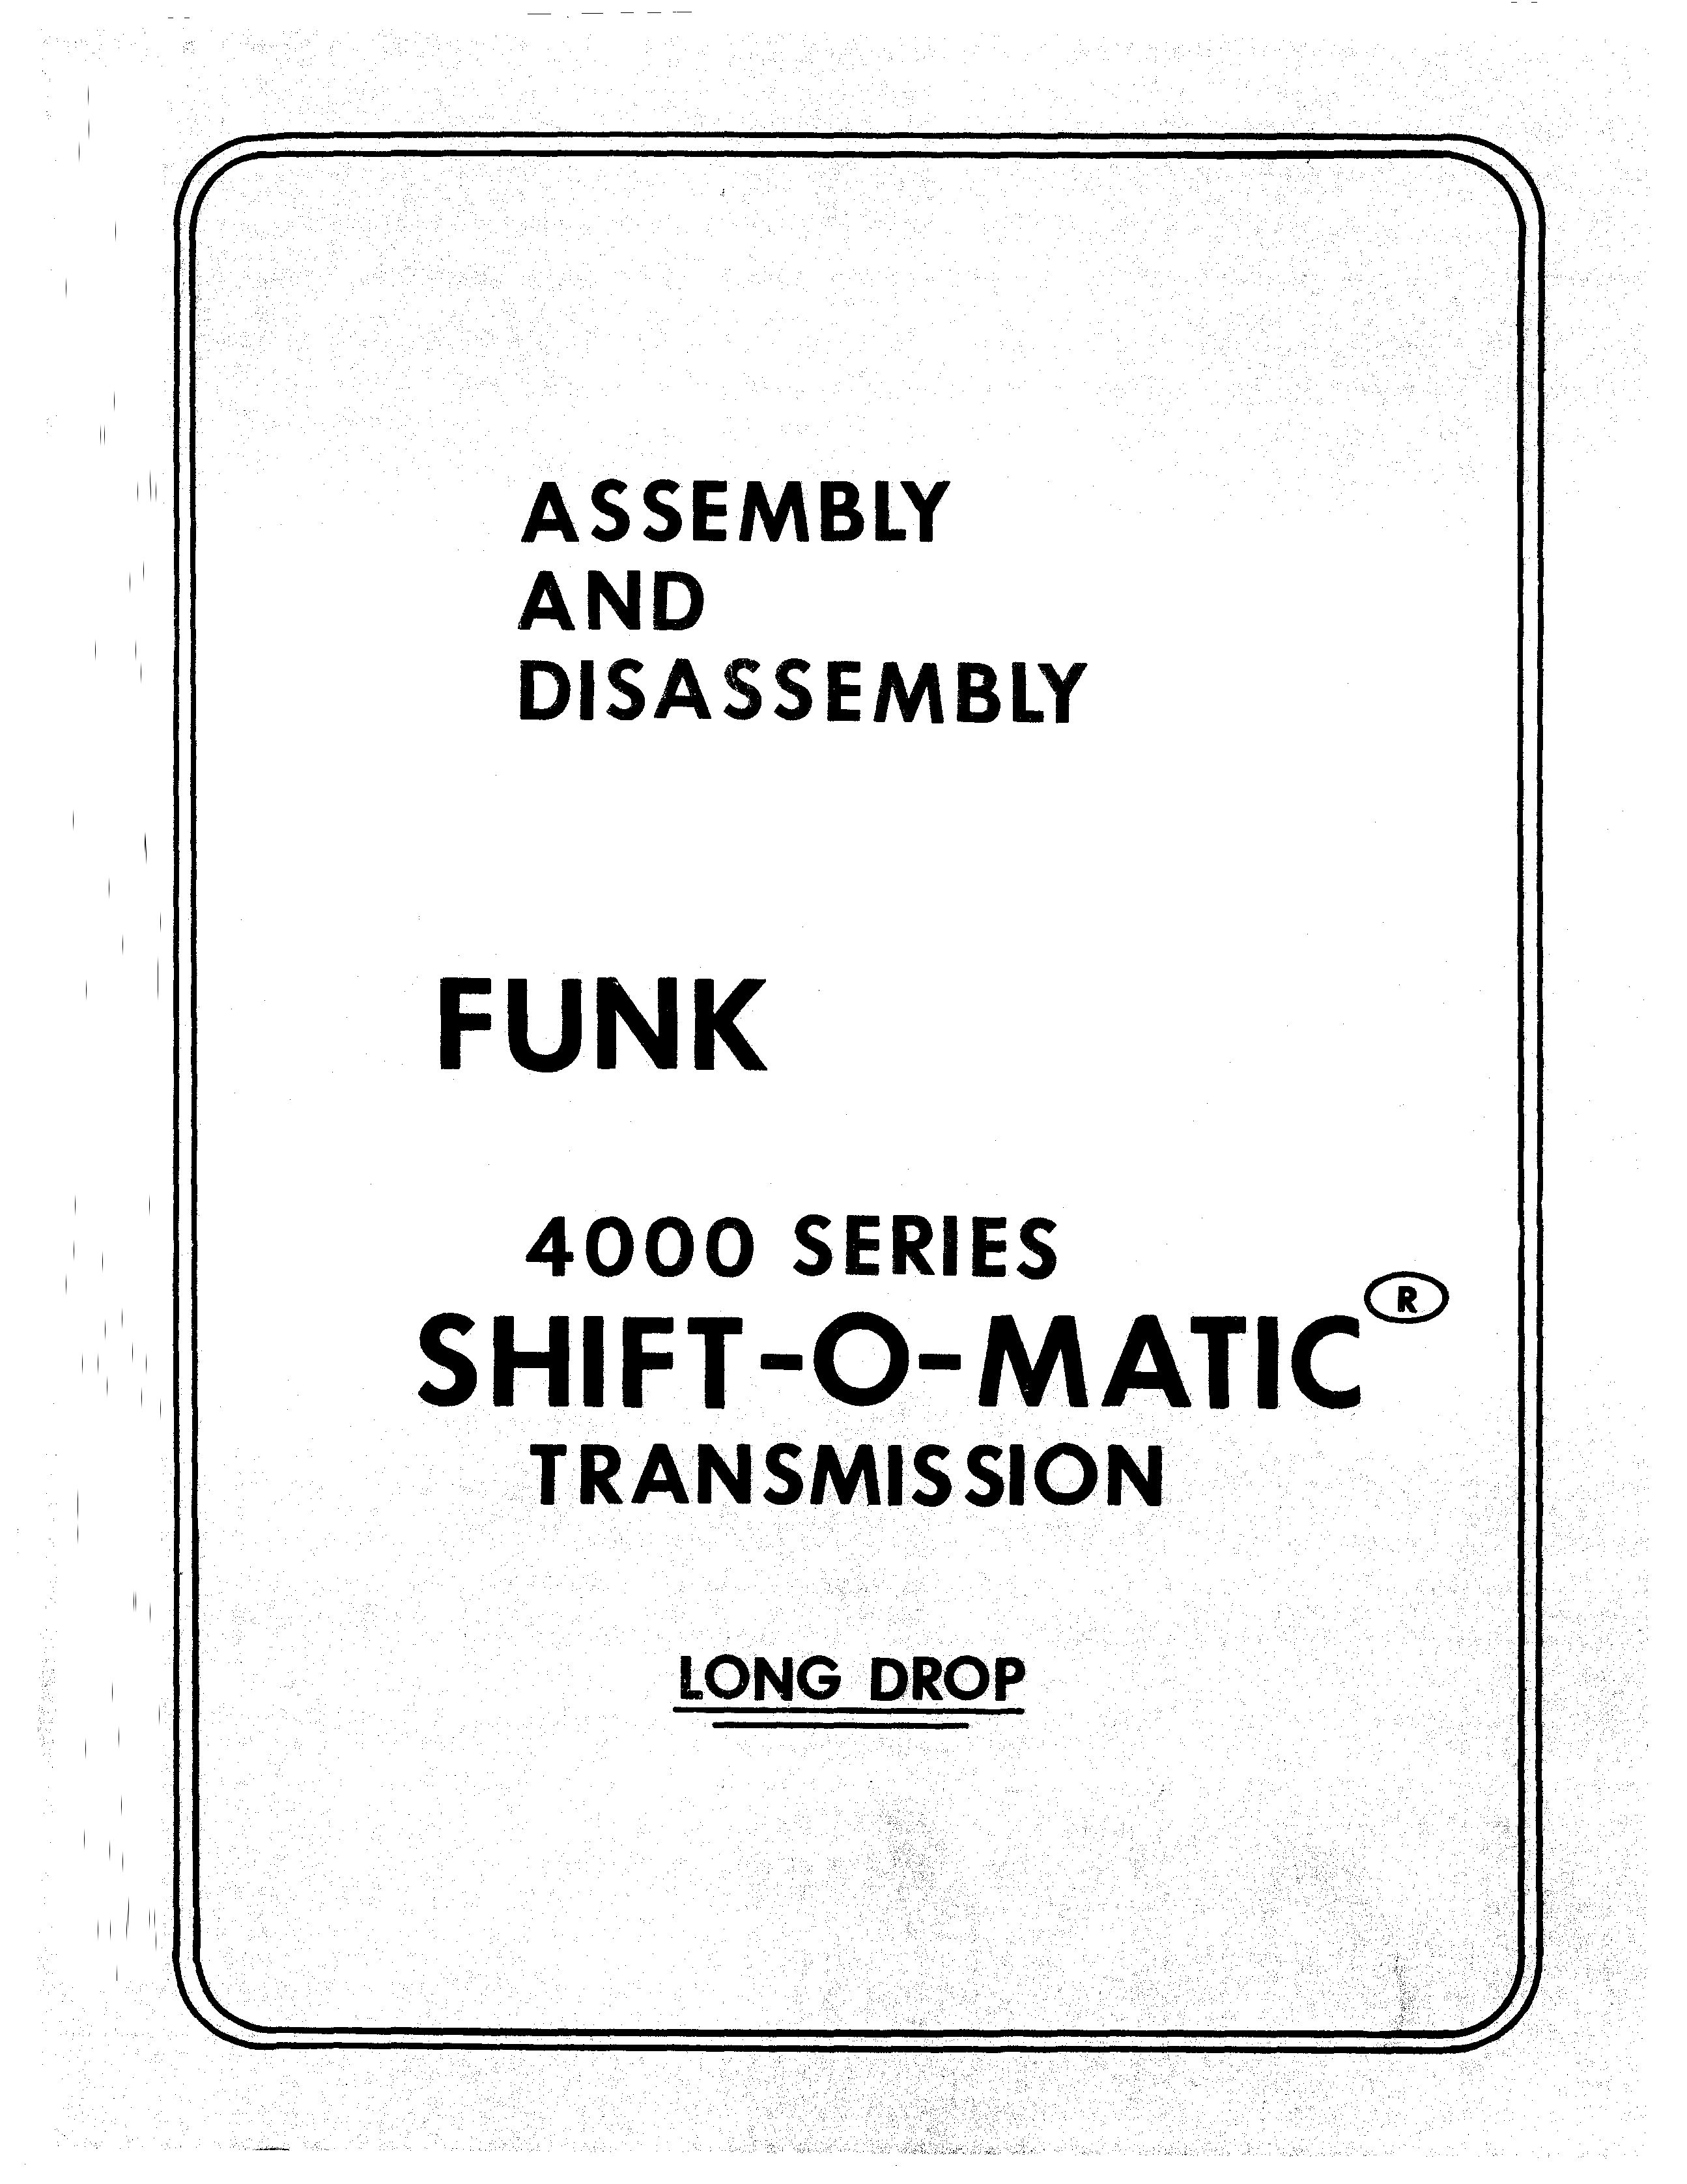 Funk 4000 Series Transmissions Assembly And Disassembly Manual Download Transmission Repair And Maintenance Manual